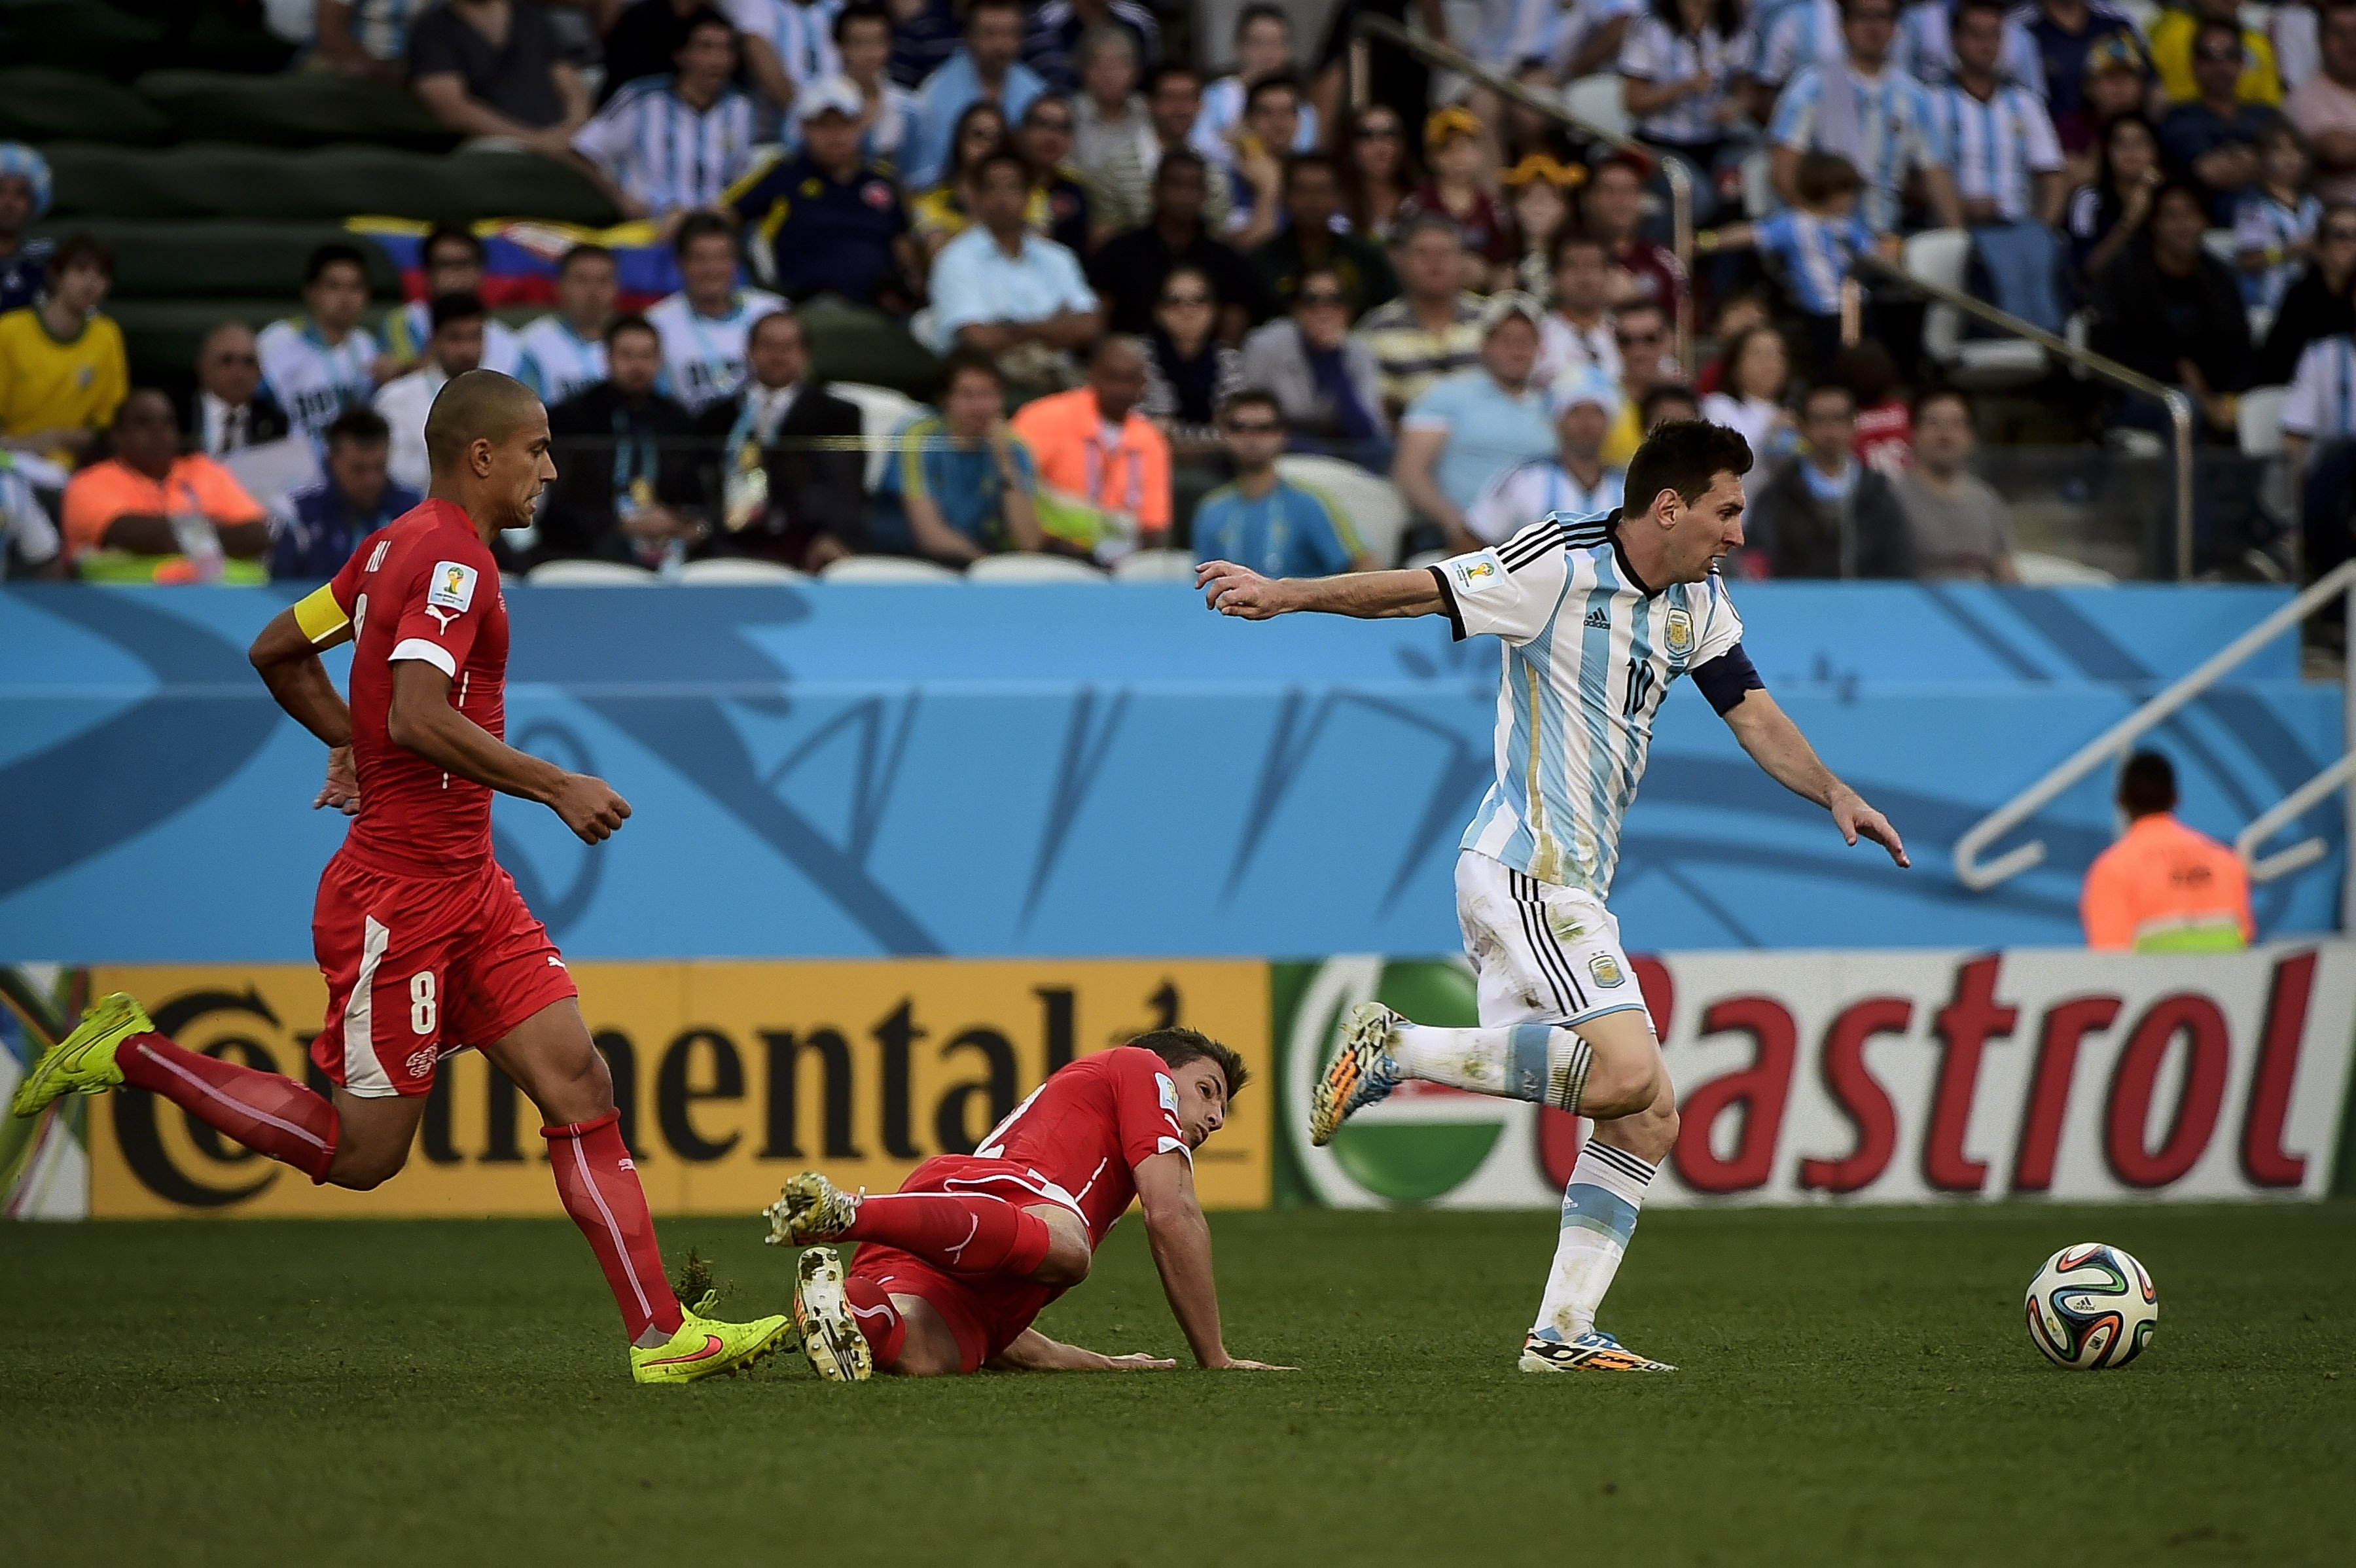 Lionel Messi (10) carries the ball through the midfiel during the Round of 16 of the 2014 World Cup, between Argentina and Switzerland, on  July 1st, in Sao Paulo, Brazil.